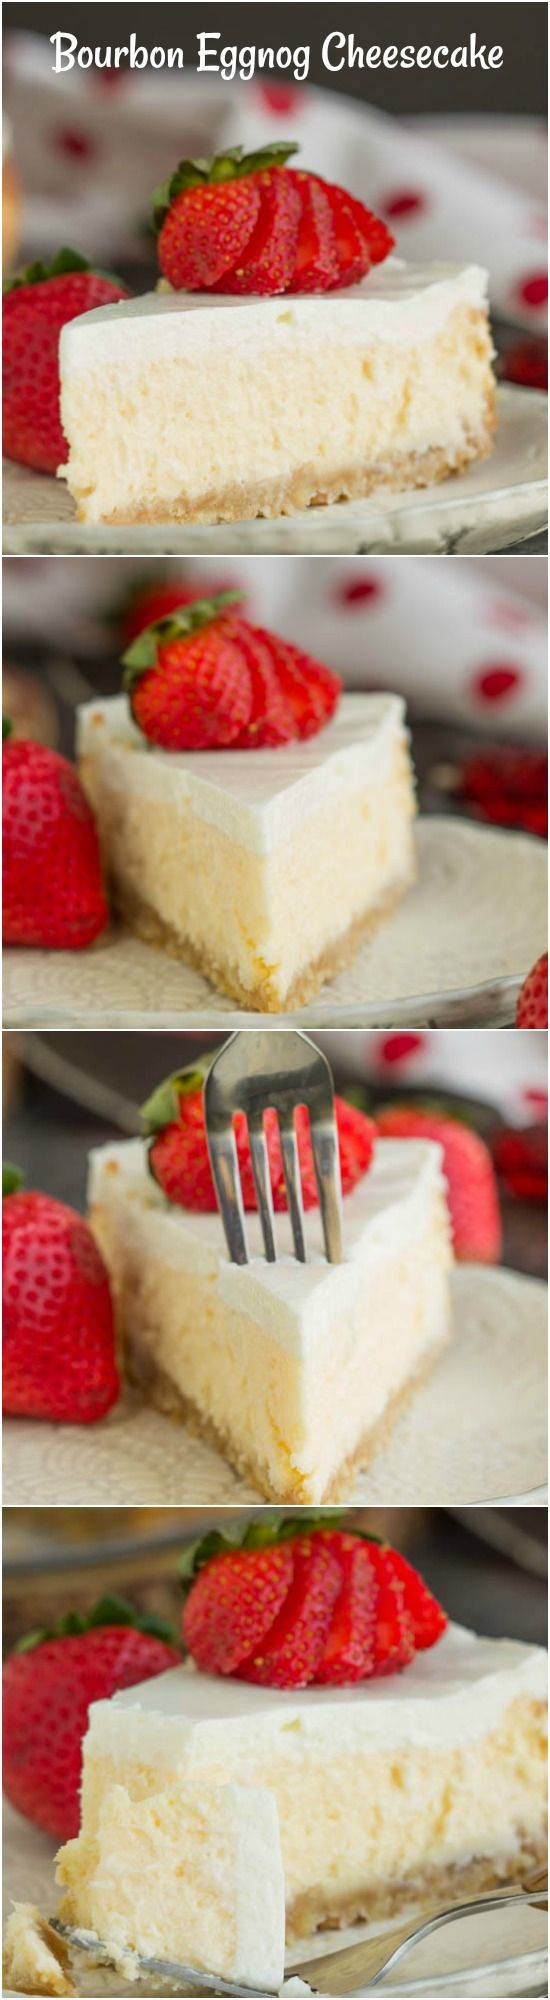 Woodford Reserve Bourbon Eggnog Cheesecake with Vanilla Wafer Crust https://www.callmepmc.com/woodford-reserve-bourbon-eggnog-cheesecake-with-vanilla-wafer-crust/?utm_campaign=coschedule&utm_source=pinterest&utm_medium=Paula%20%7C%20CallMePMc.com&utm_content=Woodford%20Reserve%20Bourbon%20Eggnog%20Cheesecake%20with%20Vanilla%20Wafer%20Crust